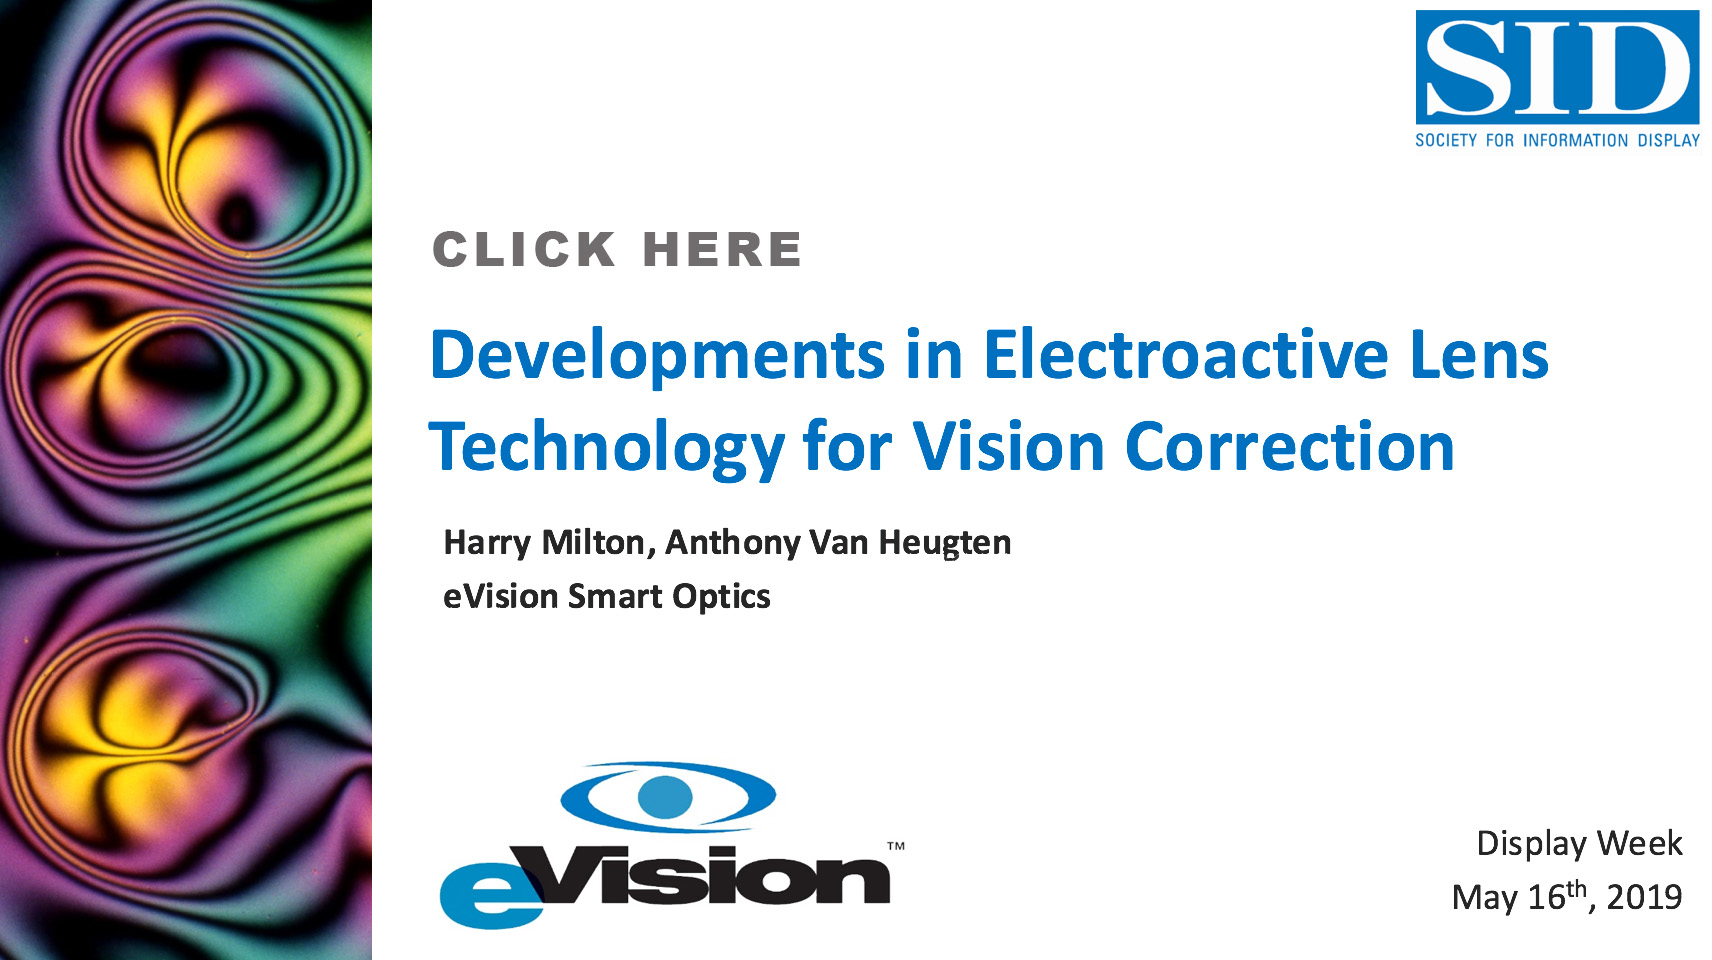 Electronic Eyeglasses and Electronic Contacts | eVision